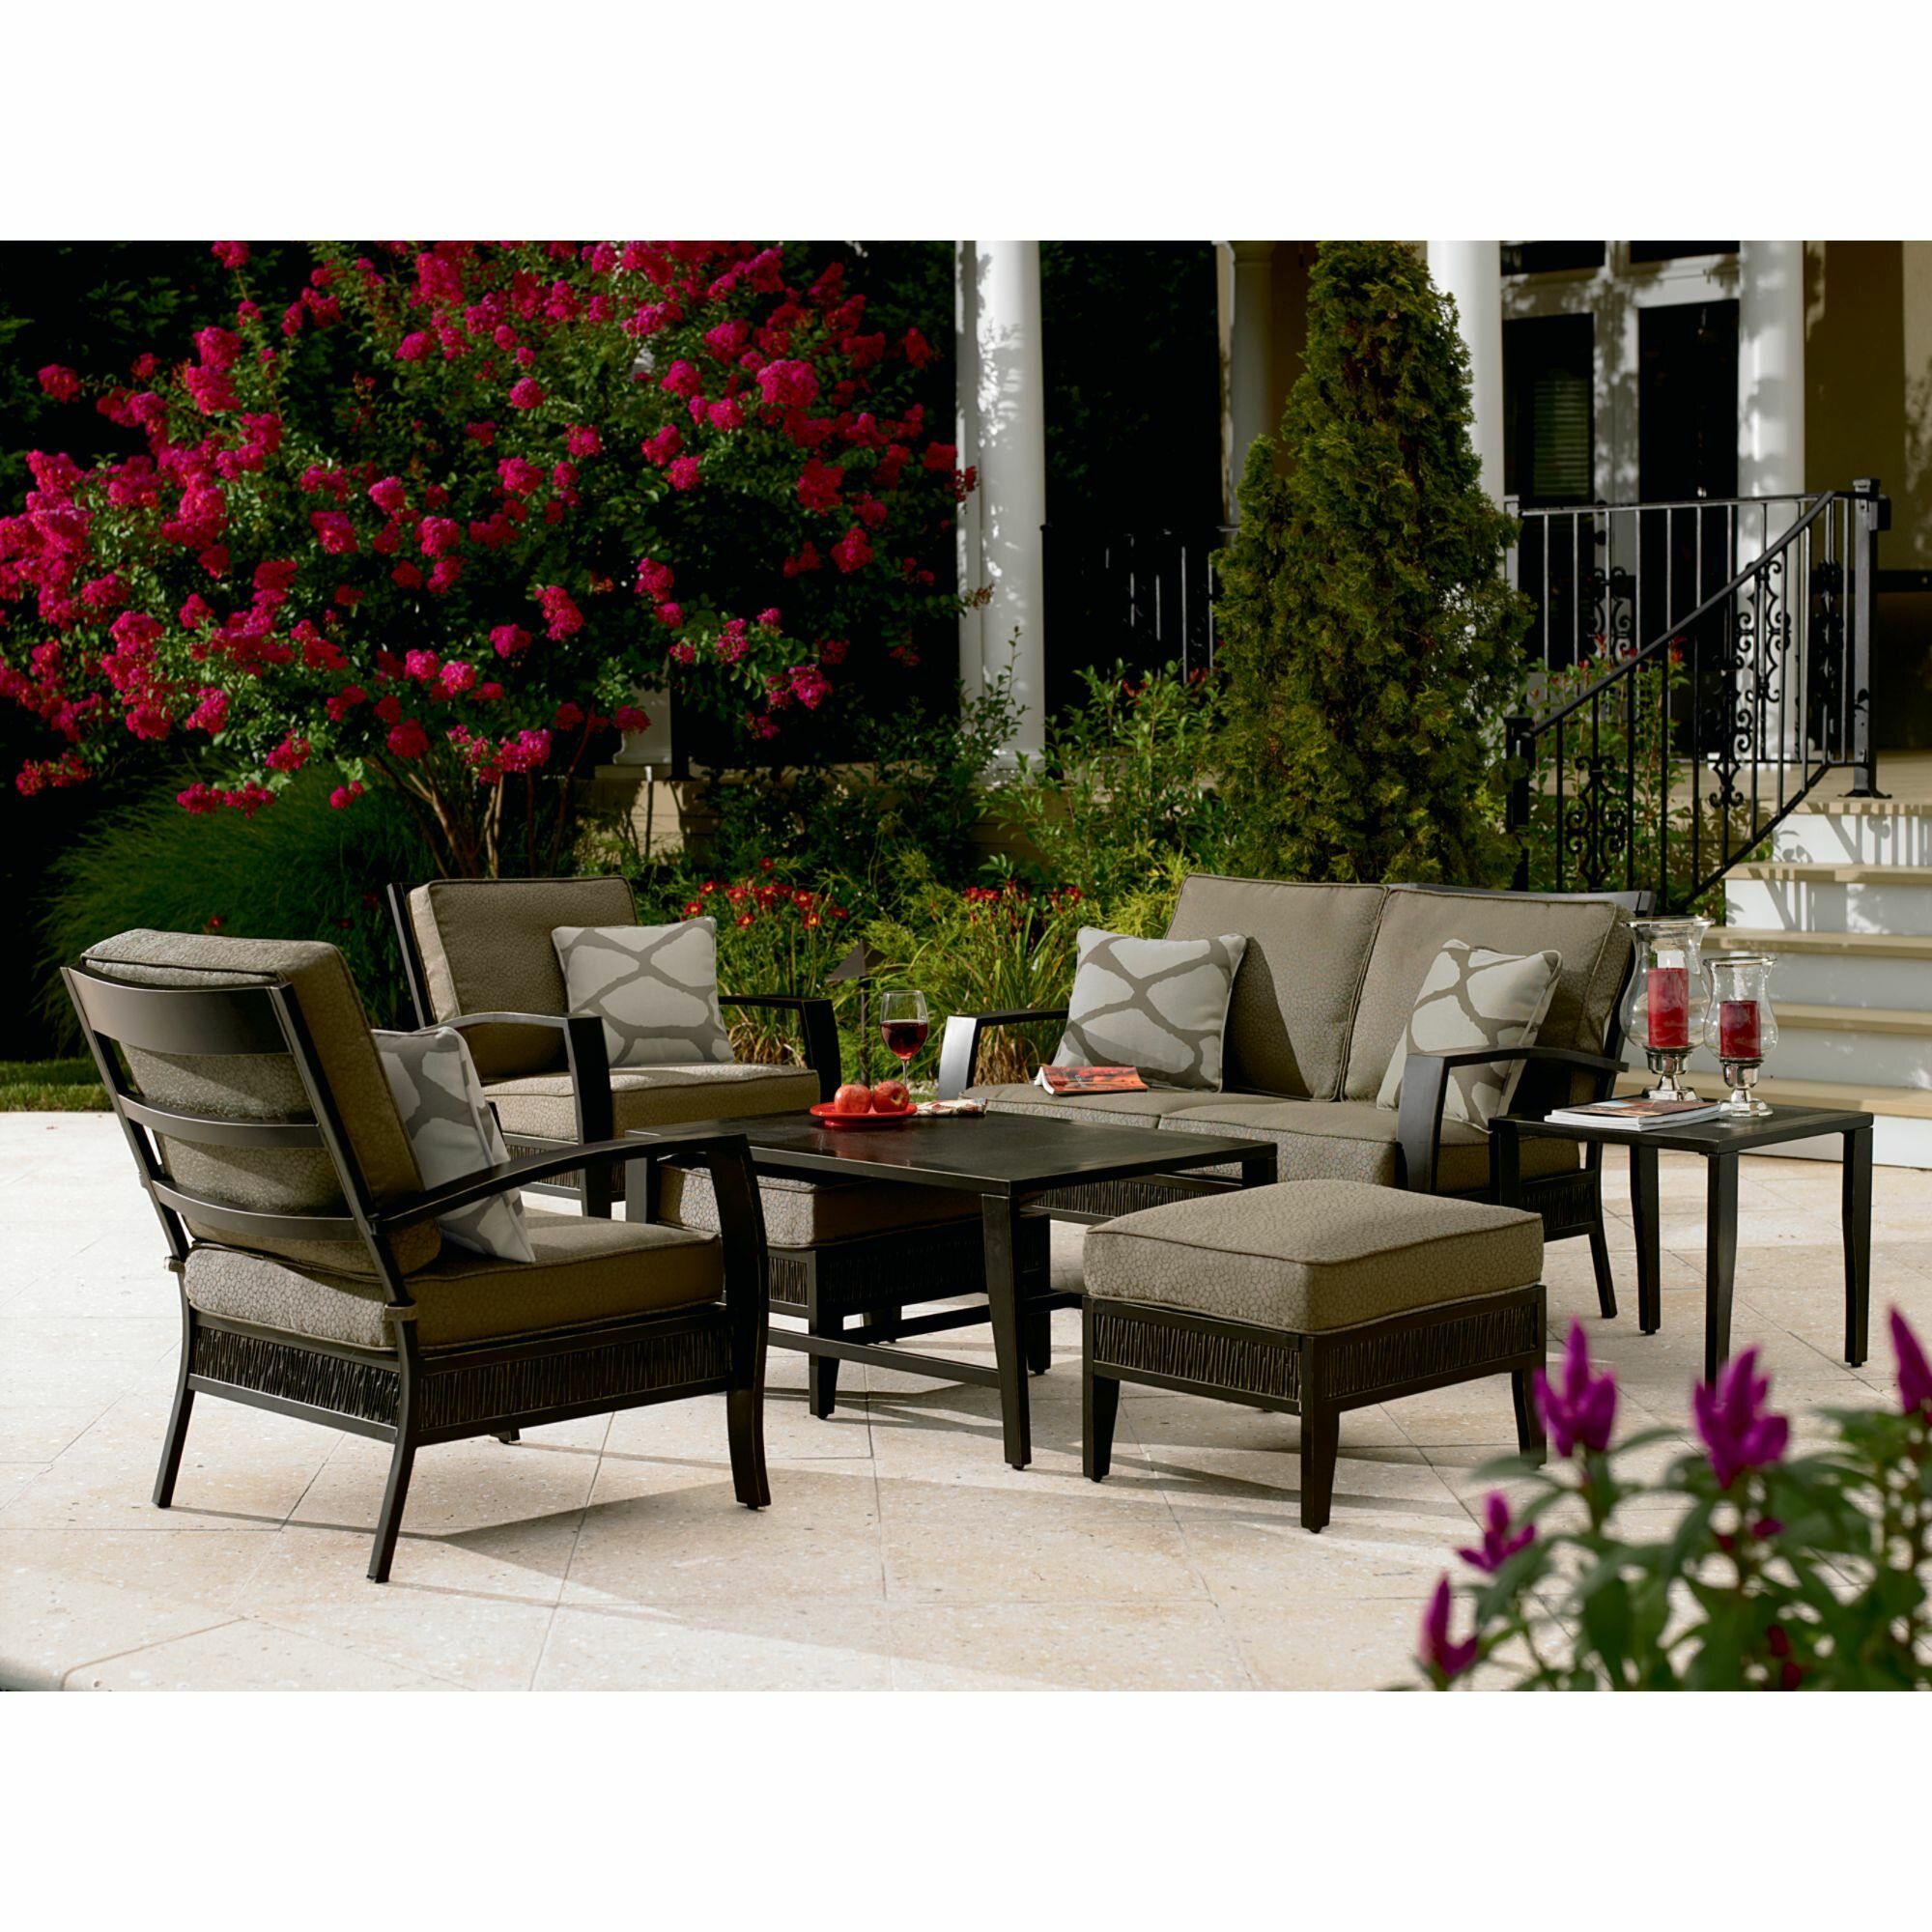 Cheap outdoor patio furniture patio furniture houston outlet concrete patio tables used outdoor - Garden furniture clearance ...